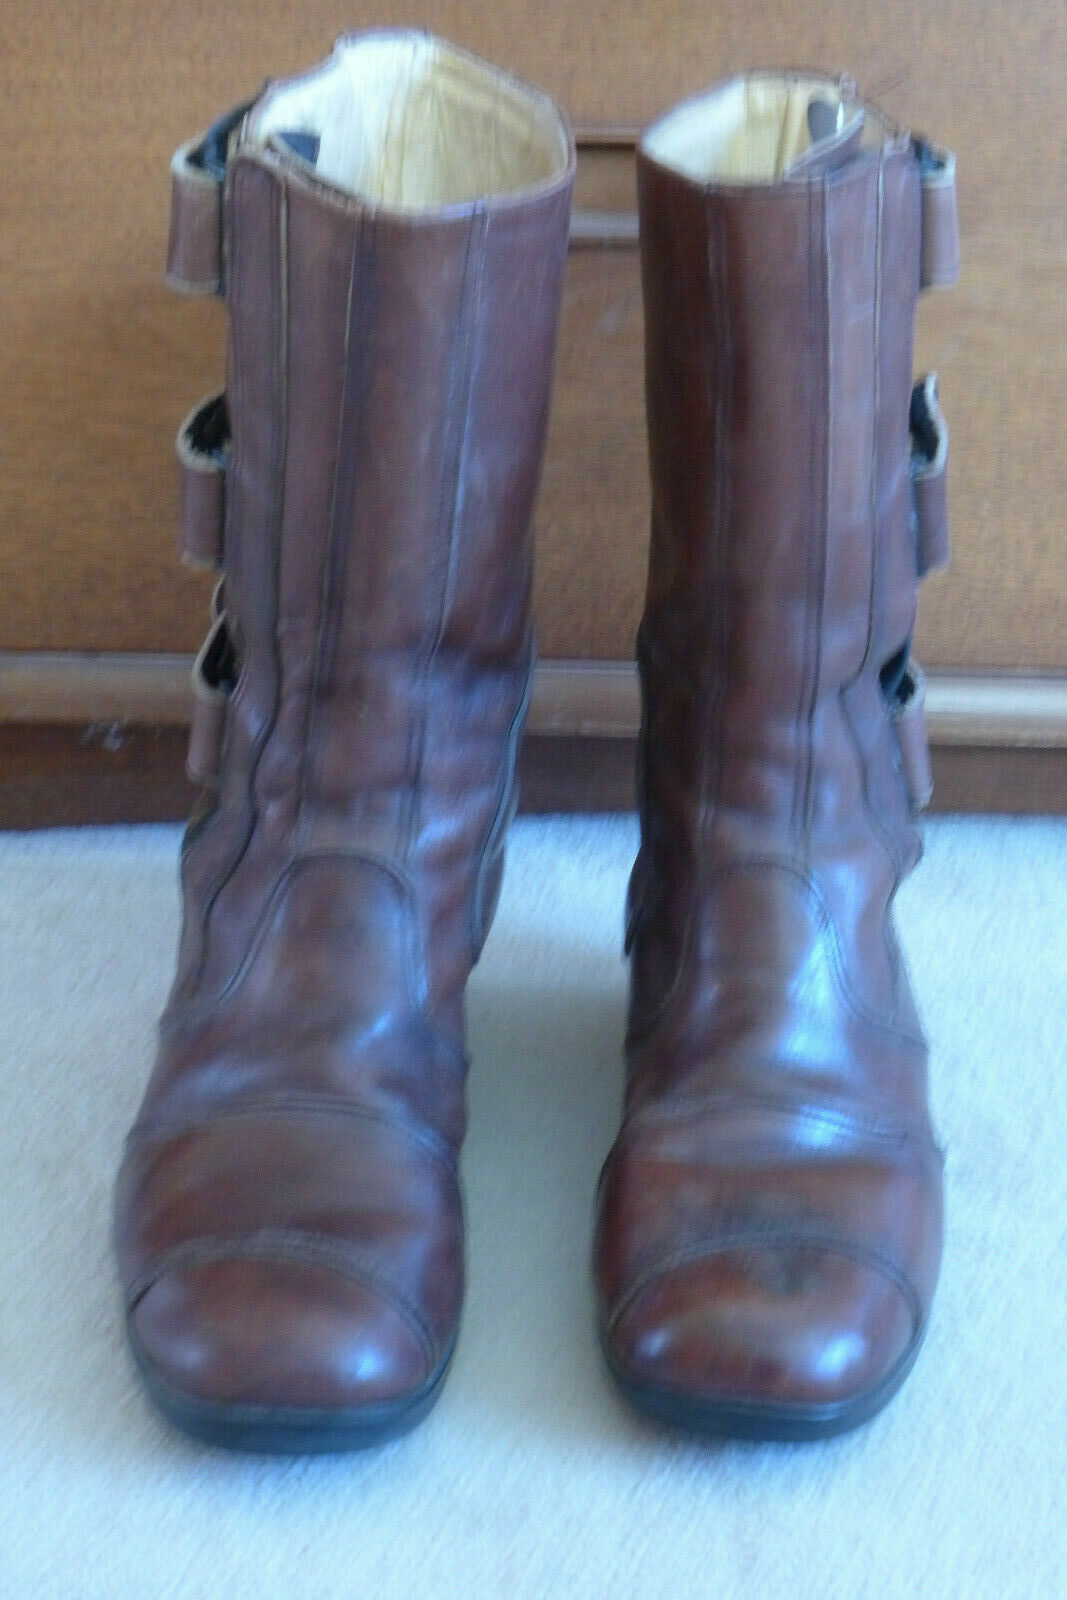 Fine vintage (1960's) motorcycle boots, size 41, made in